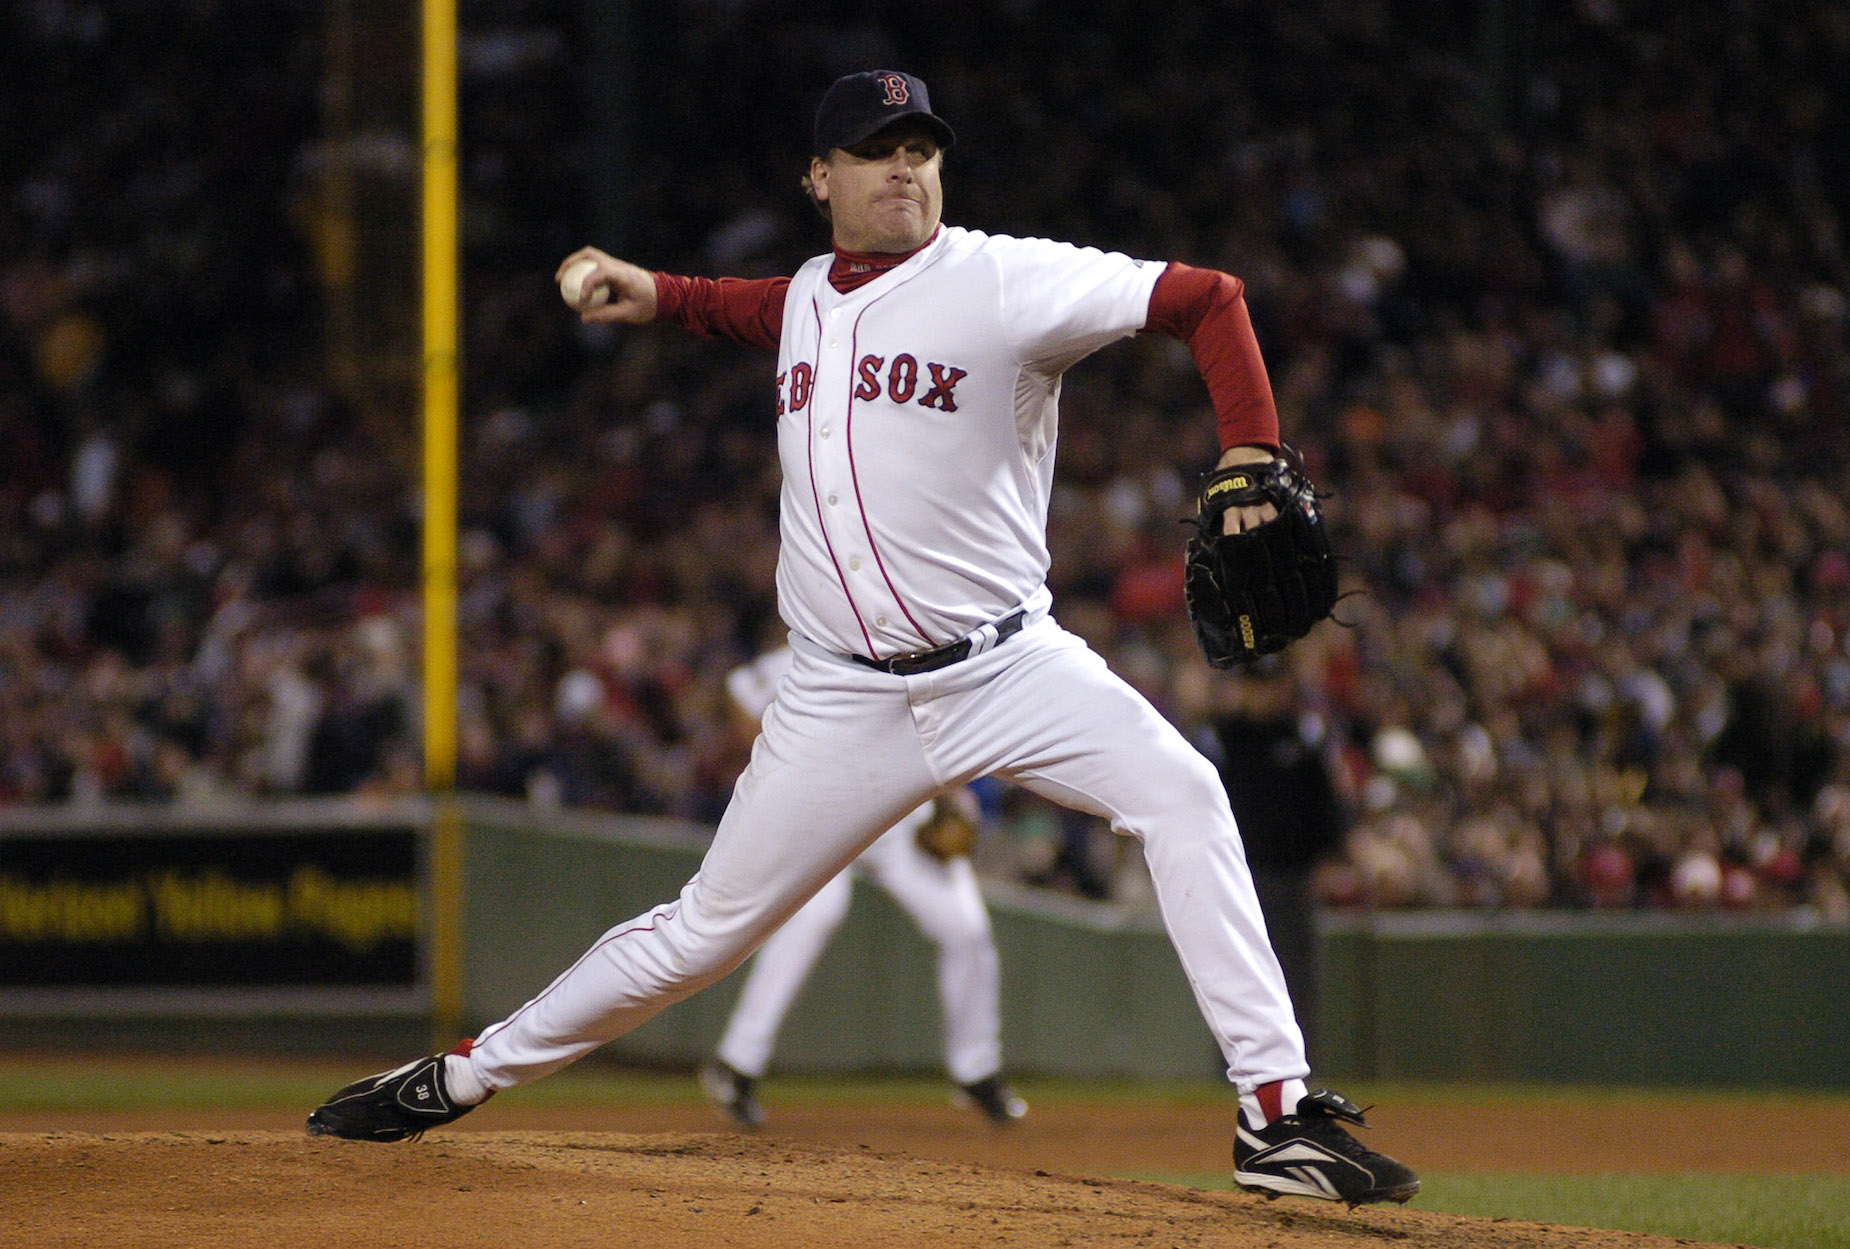 Controversial pitcher Curt Schilling once received a $15,000 fine for smashing a camera.